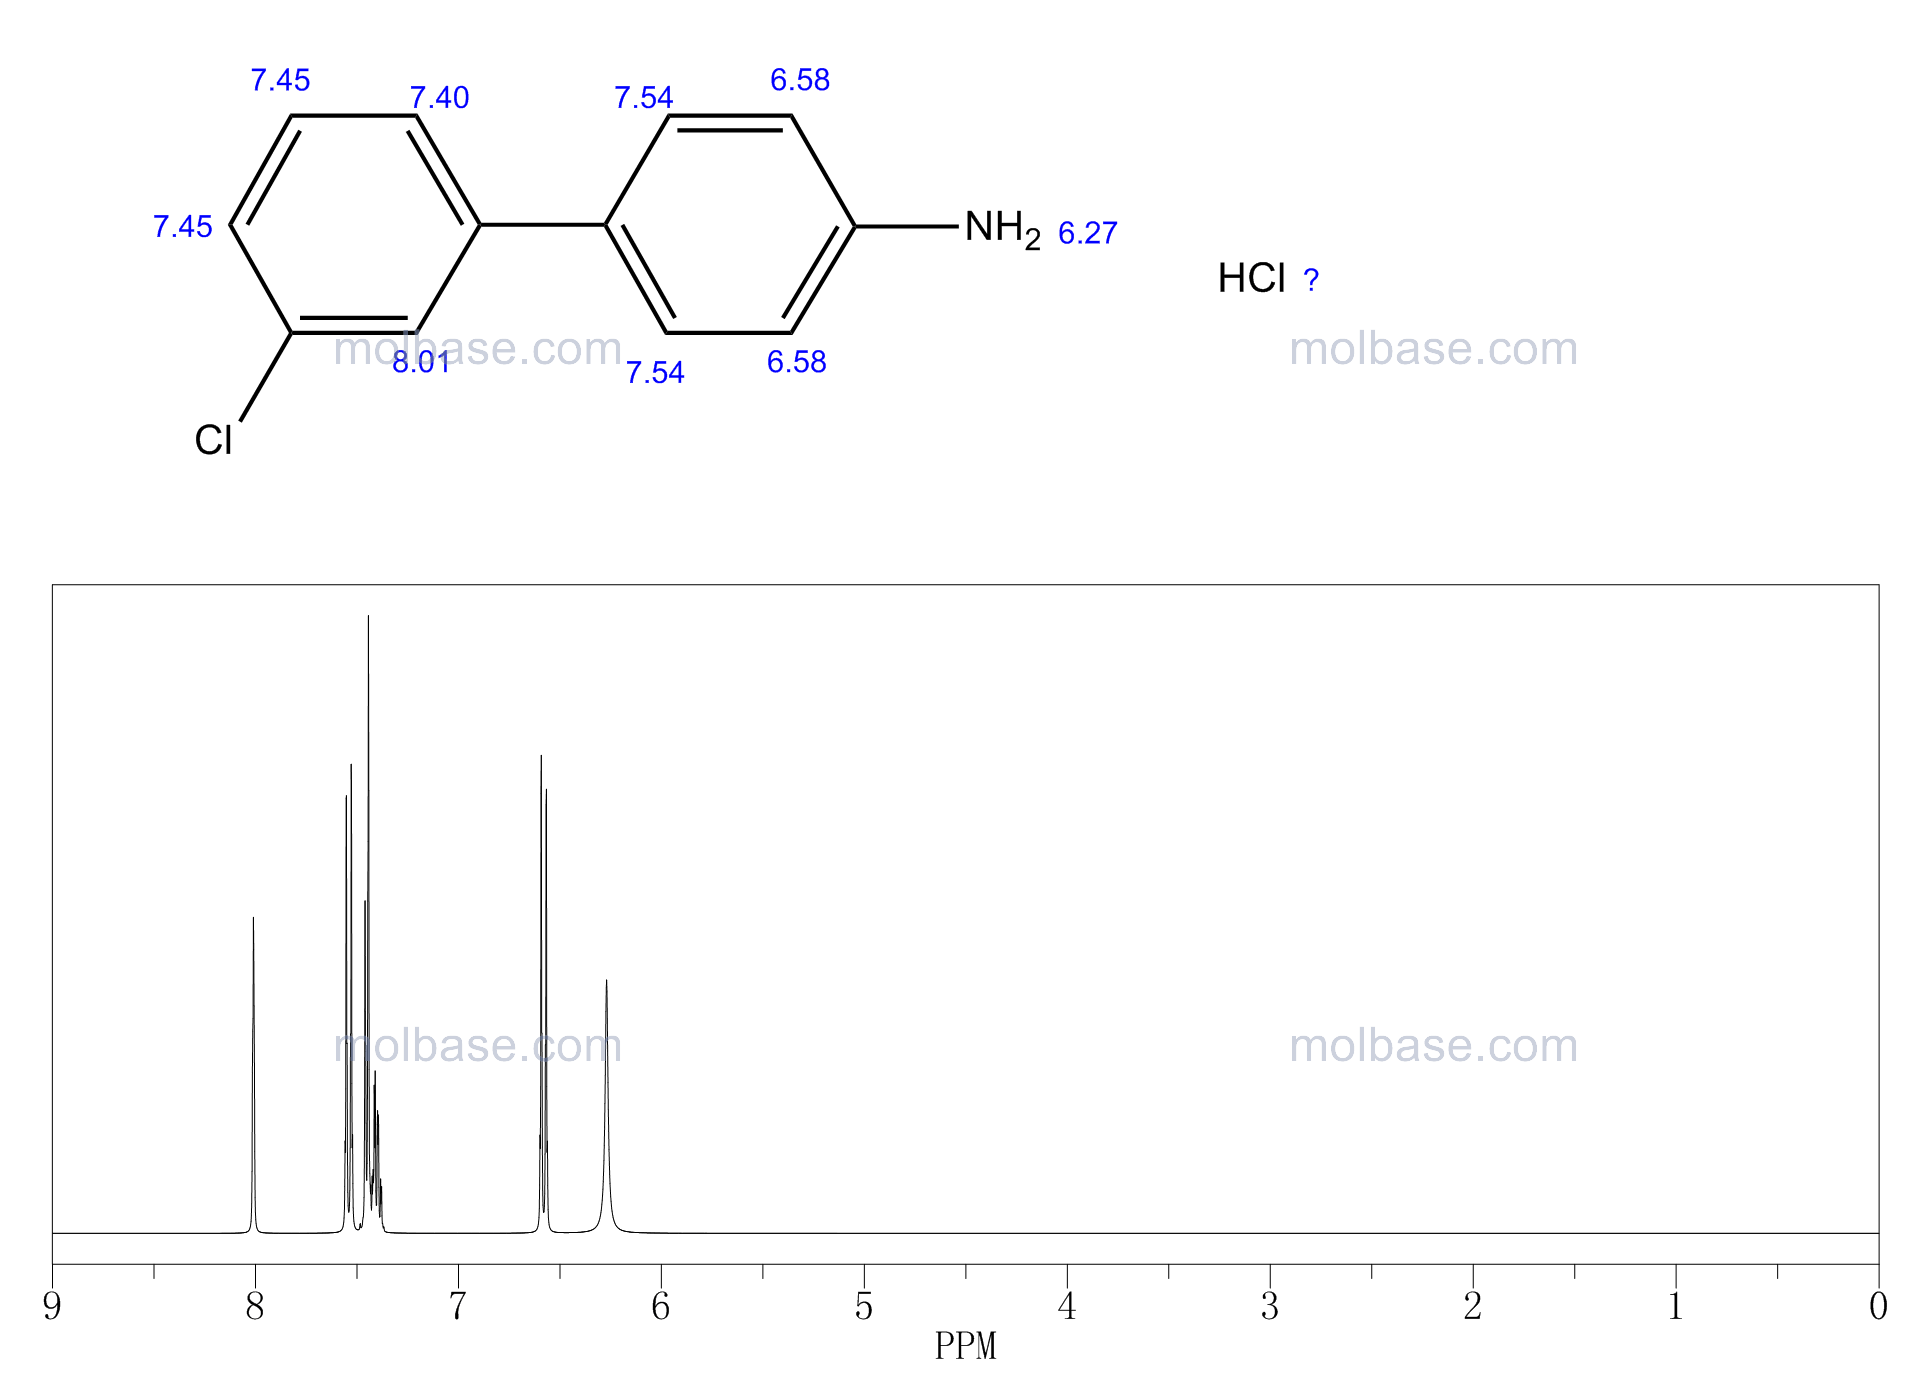 3'-Chloro-[1,1'-biphenyl]-4-amine hydrochloride NMR spectra analysis, Chemical CAS NO. 811842-60-1 NMR spectral analysis, 3'-Chloro-[1,1'-biphenyl]-4-amine hydrochloride C-NMR spectrum